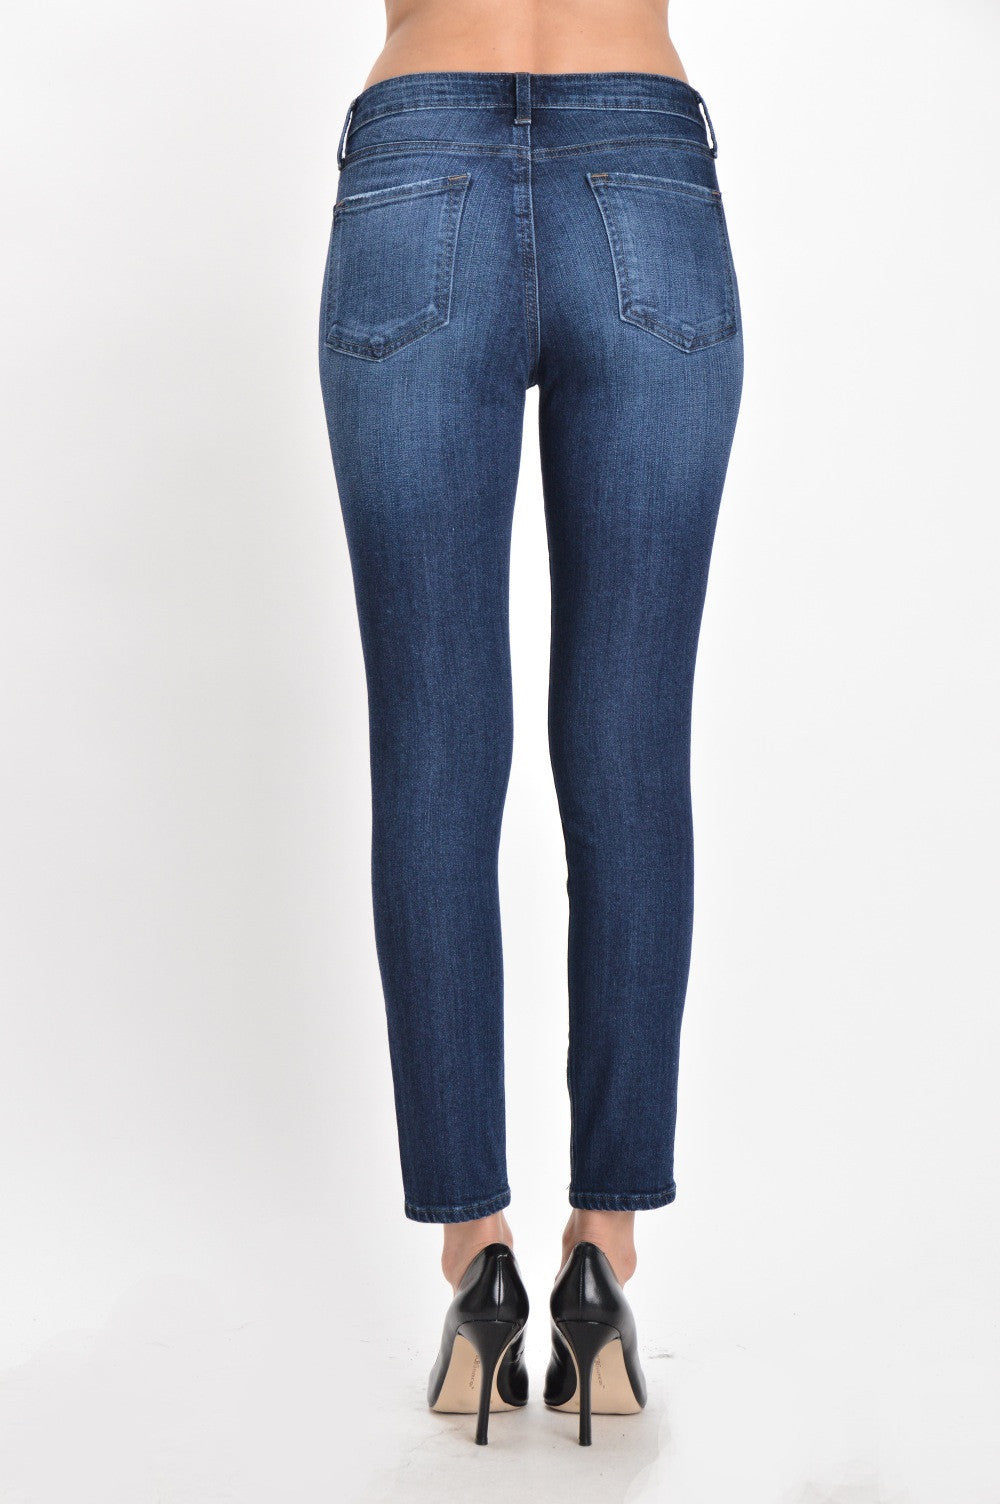 High Rise Classic Sand Wash Ankle Skinny Jeans - Dark Wash